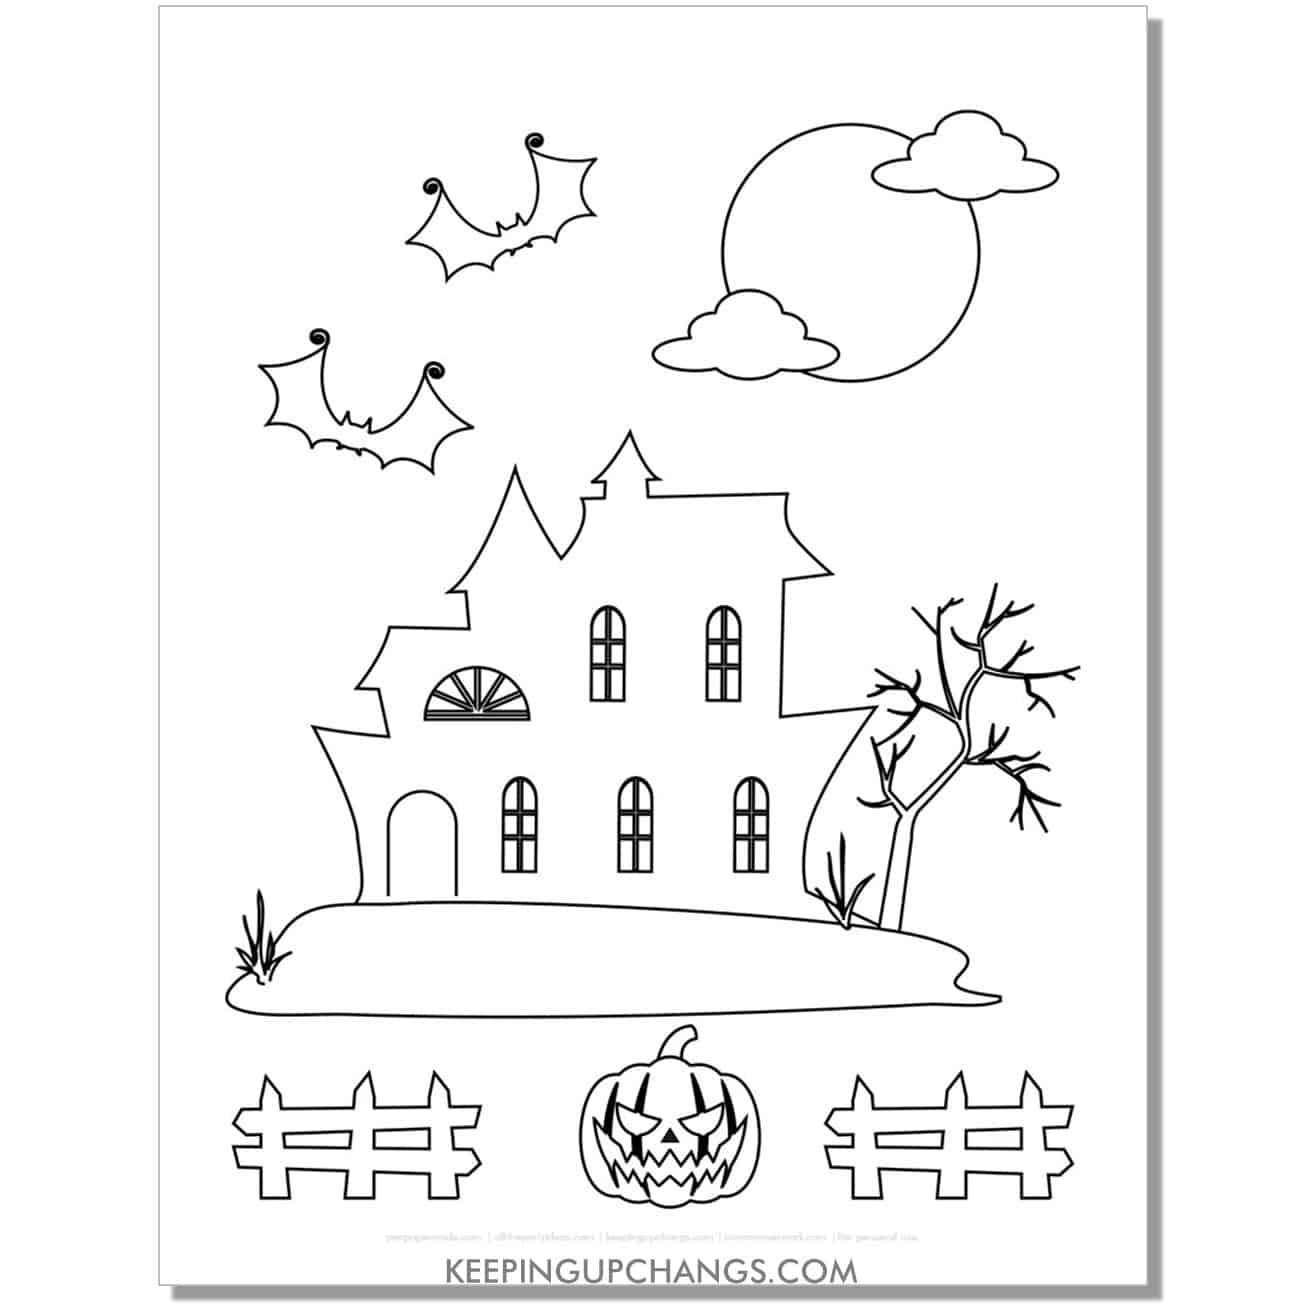 free simple haunted house outline with fence, batscoloring page.